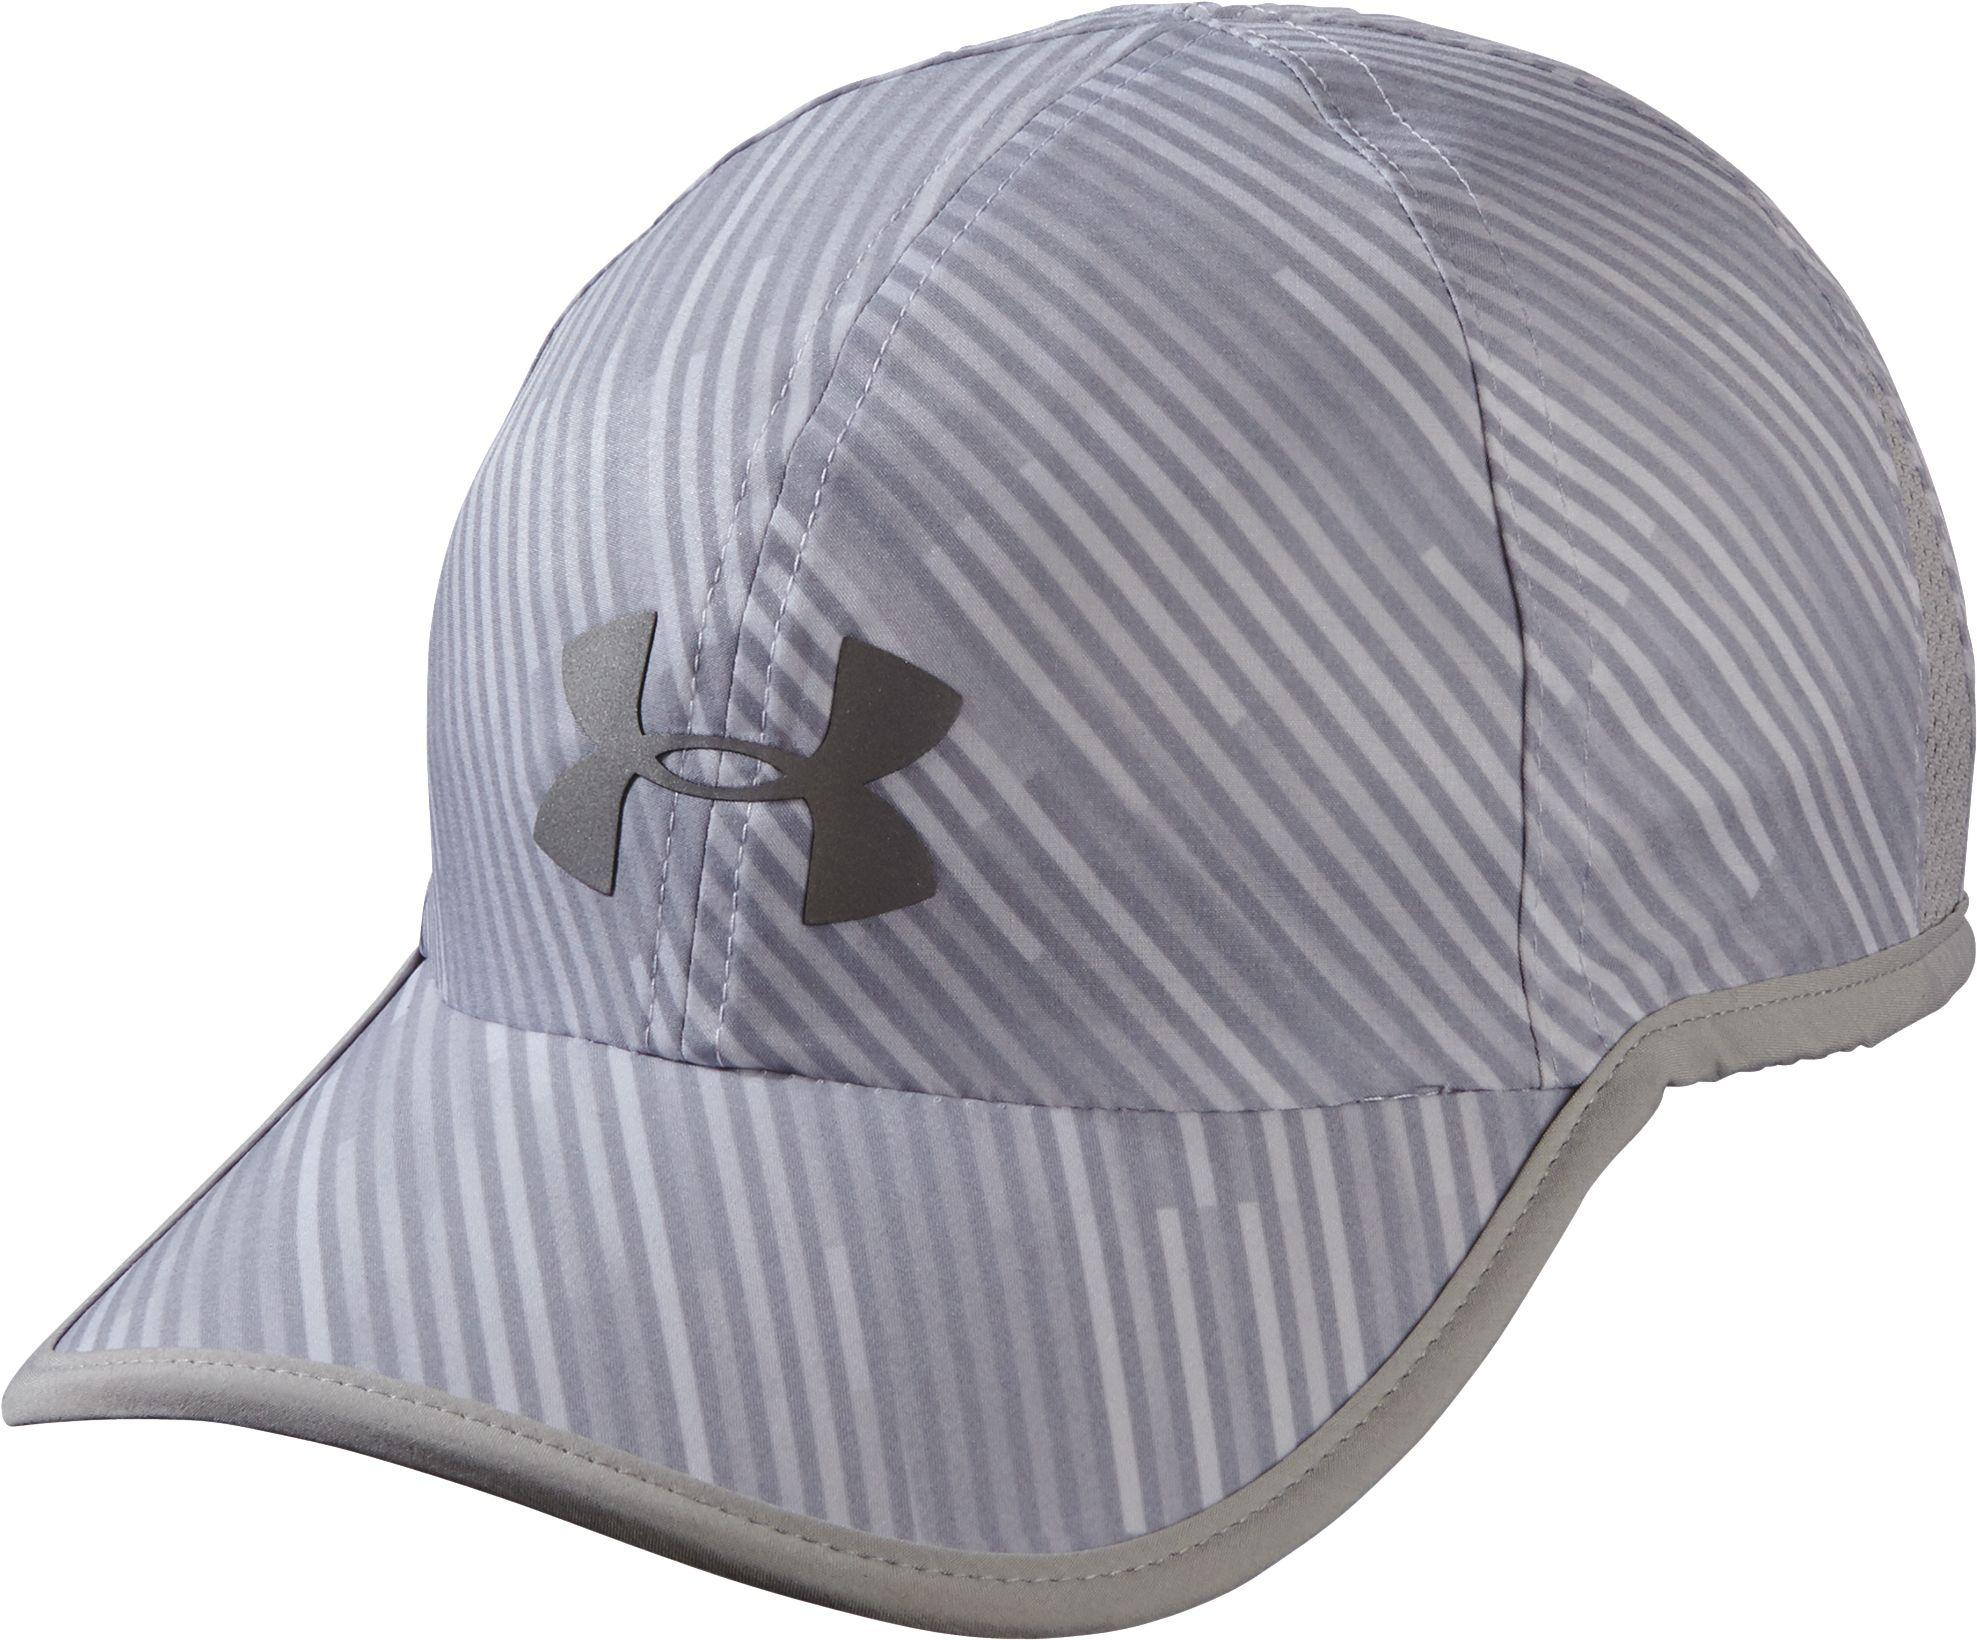 where can i buy under armour shadow run cap 4a4cb 68123 f0bfdc6b0f5